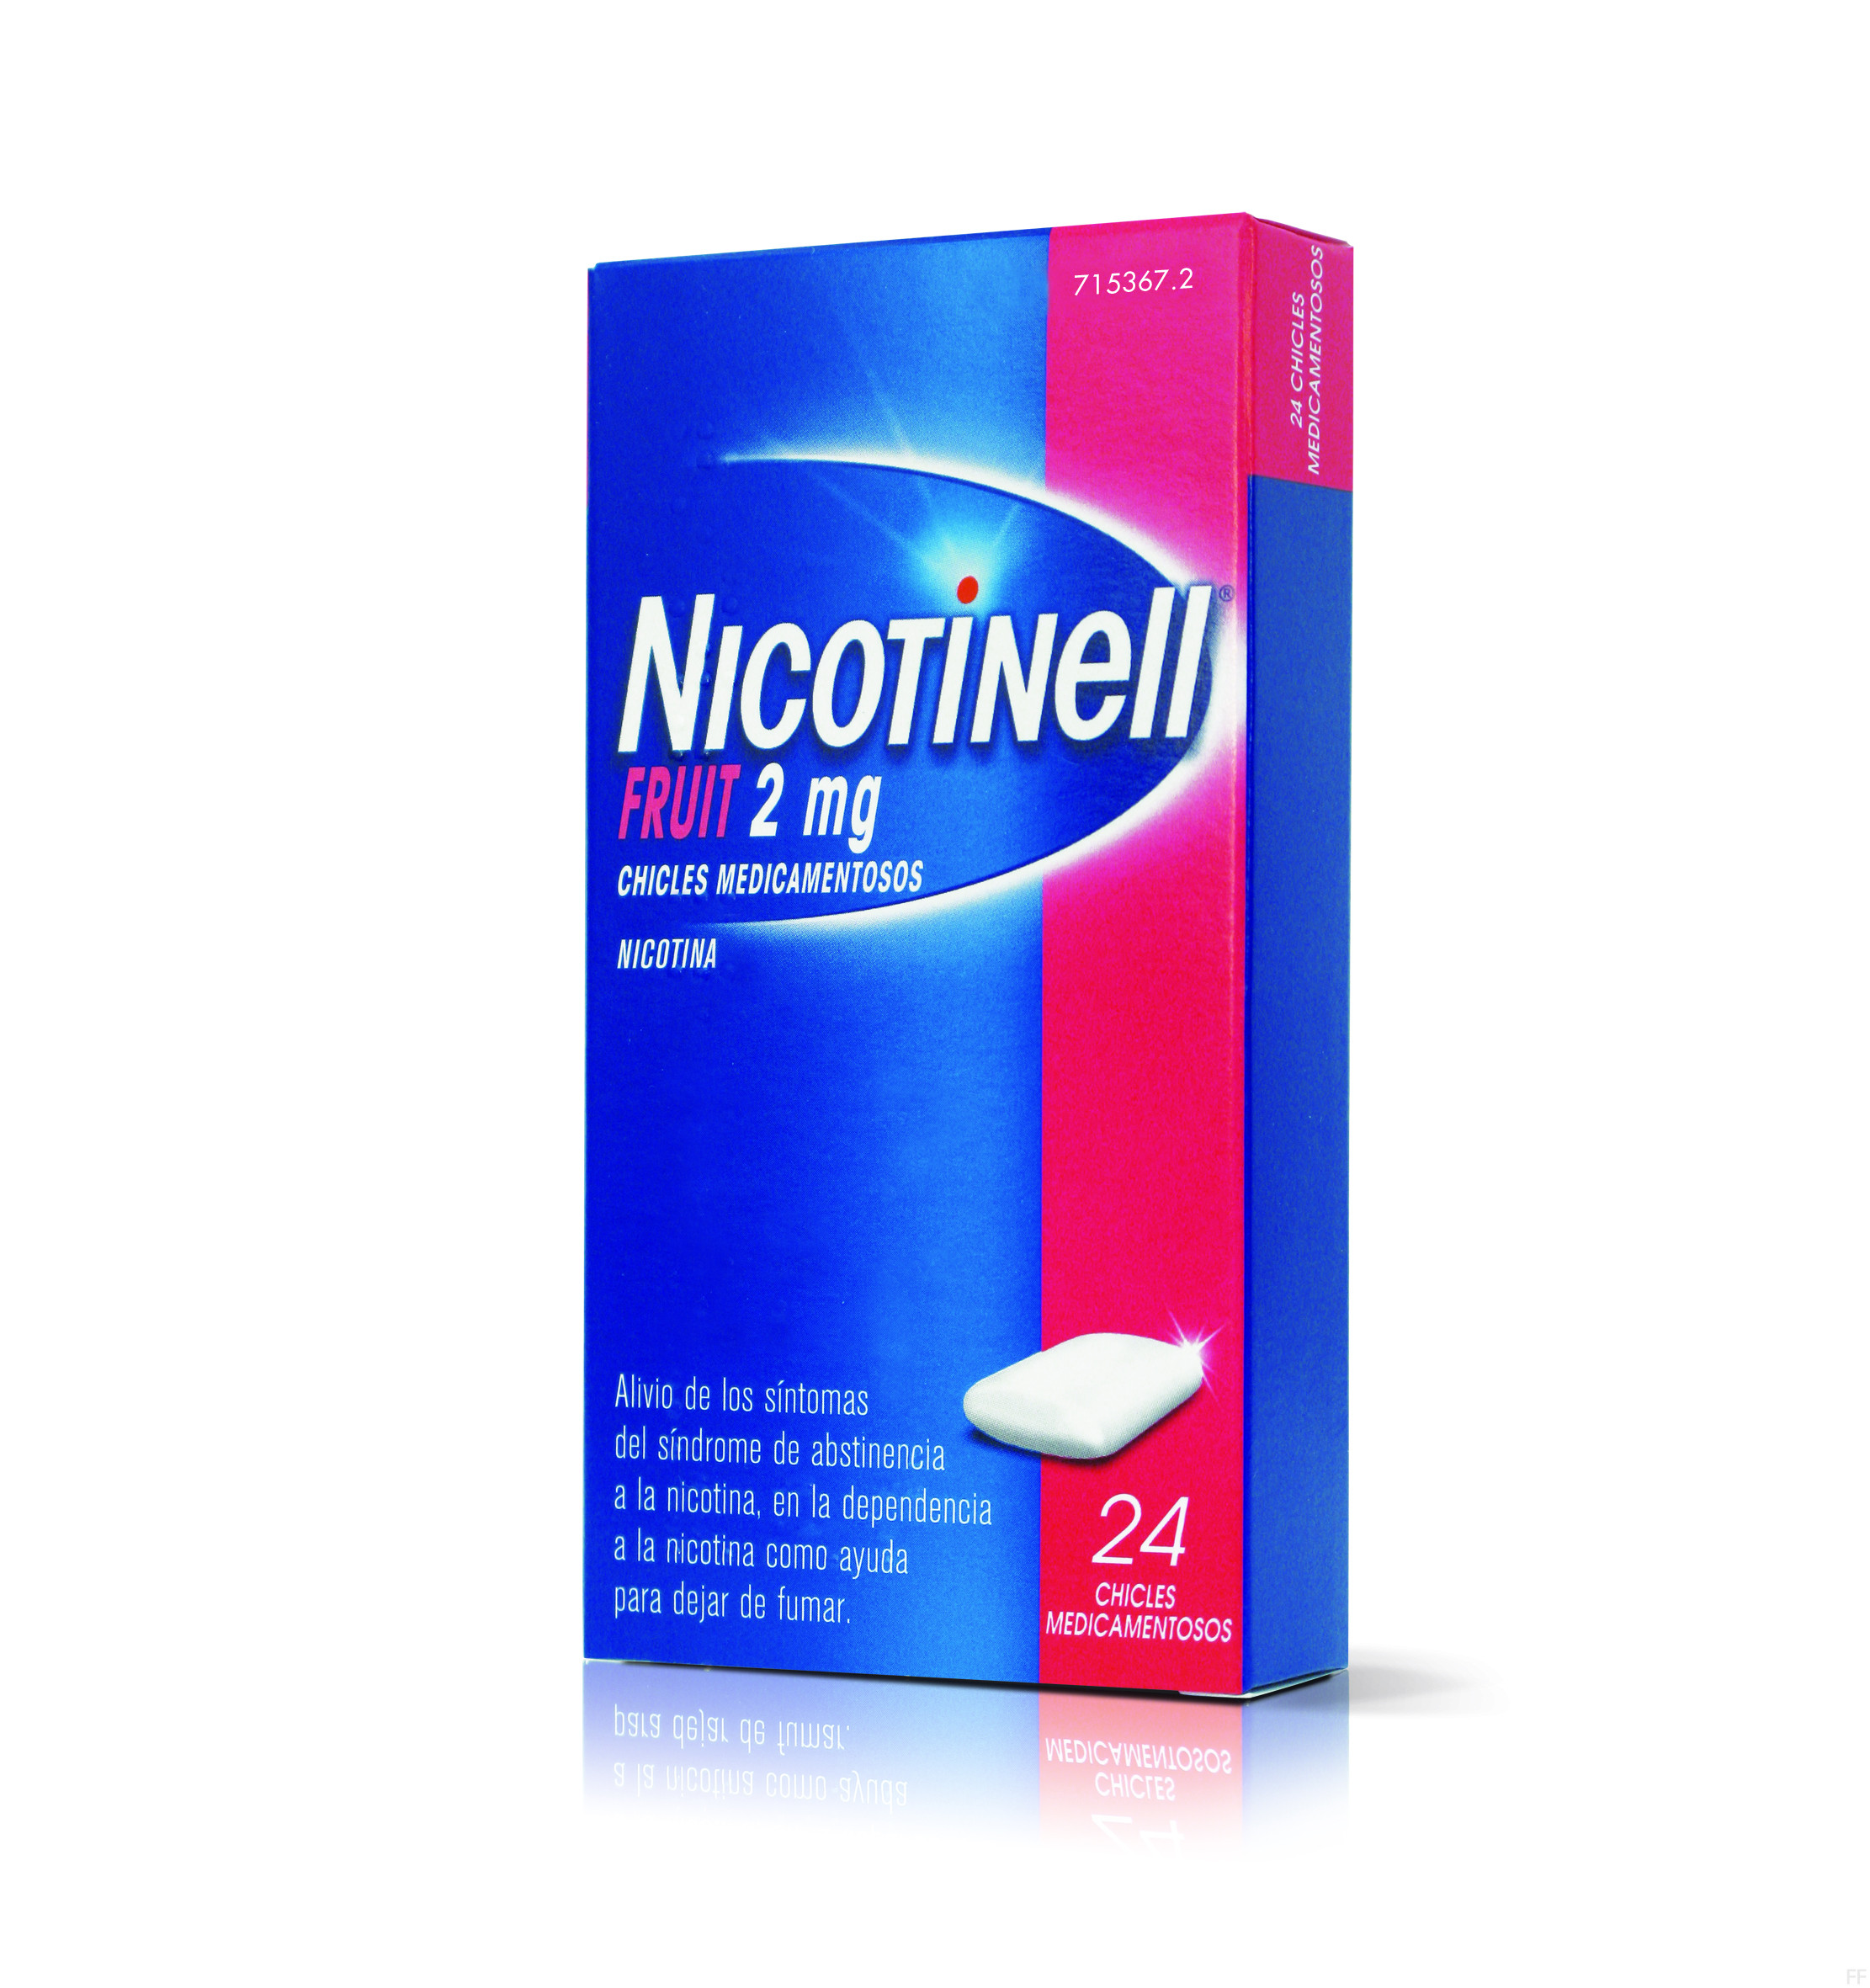 nicotinell fruit 24